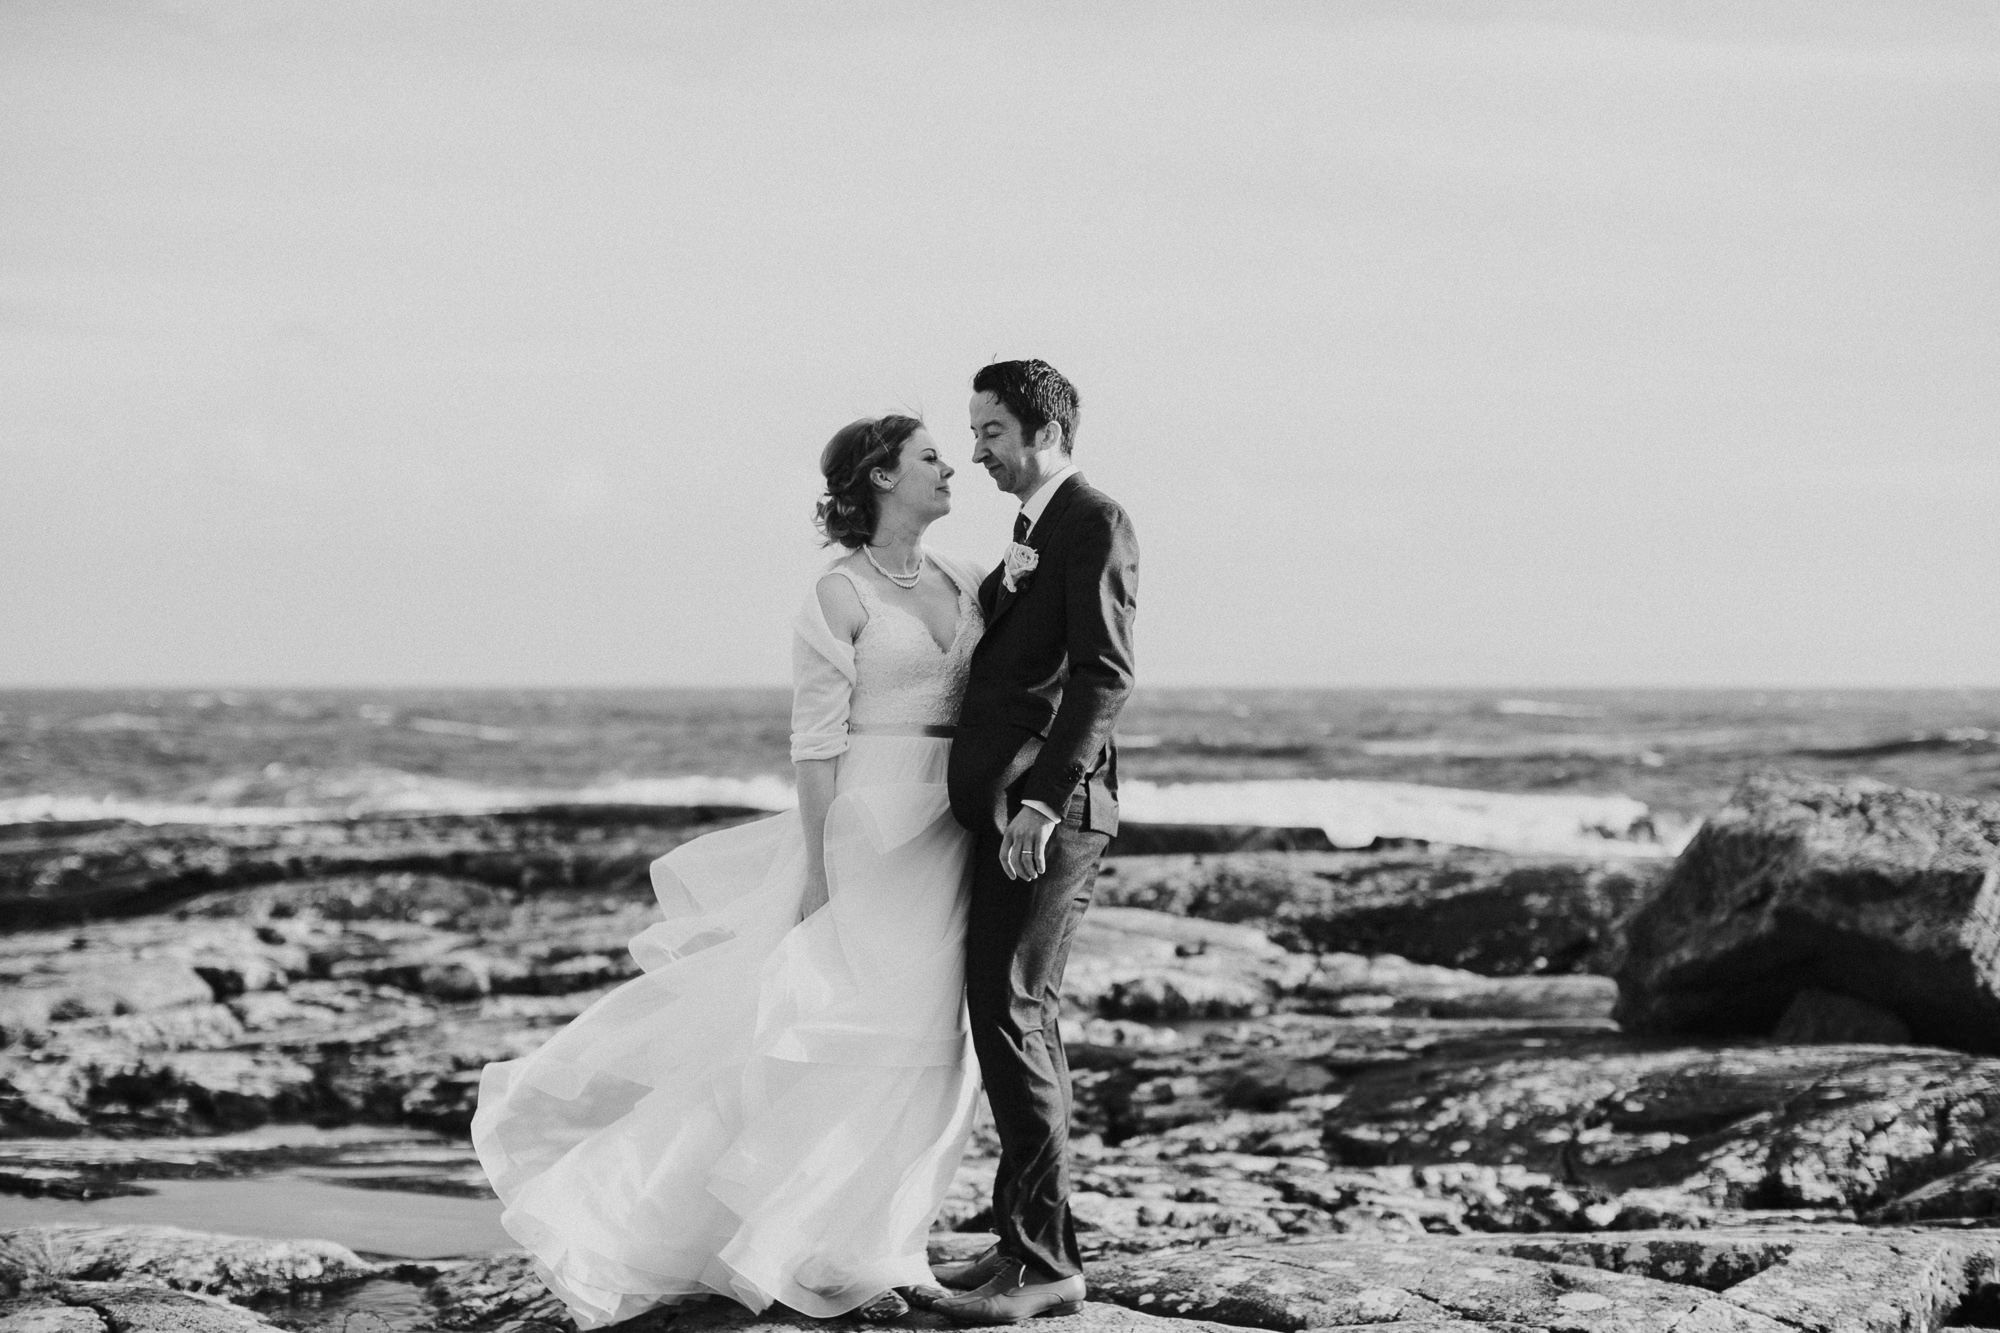 Clairebyrnephotography-slideshow-Heather-aidan-114.jpg